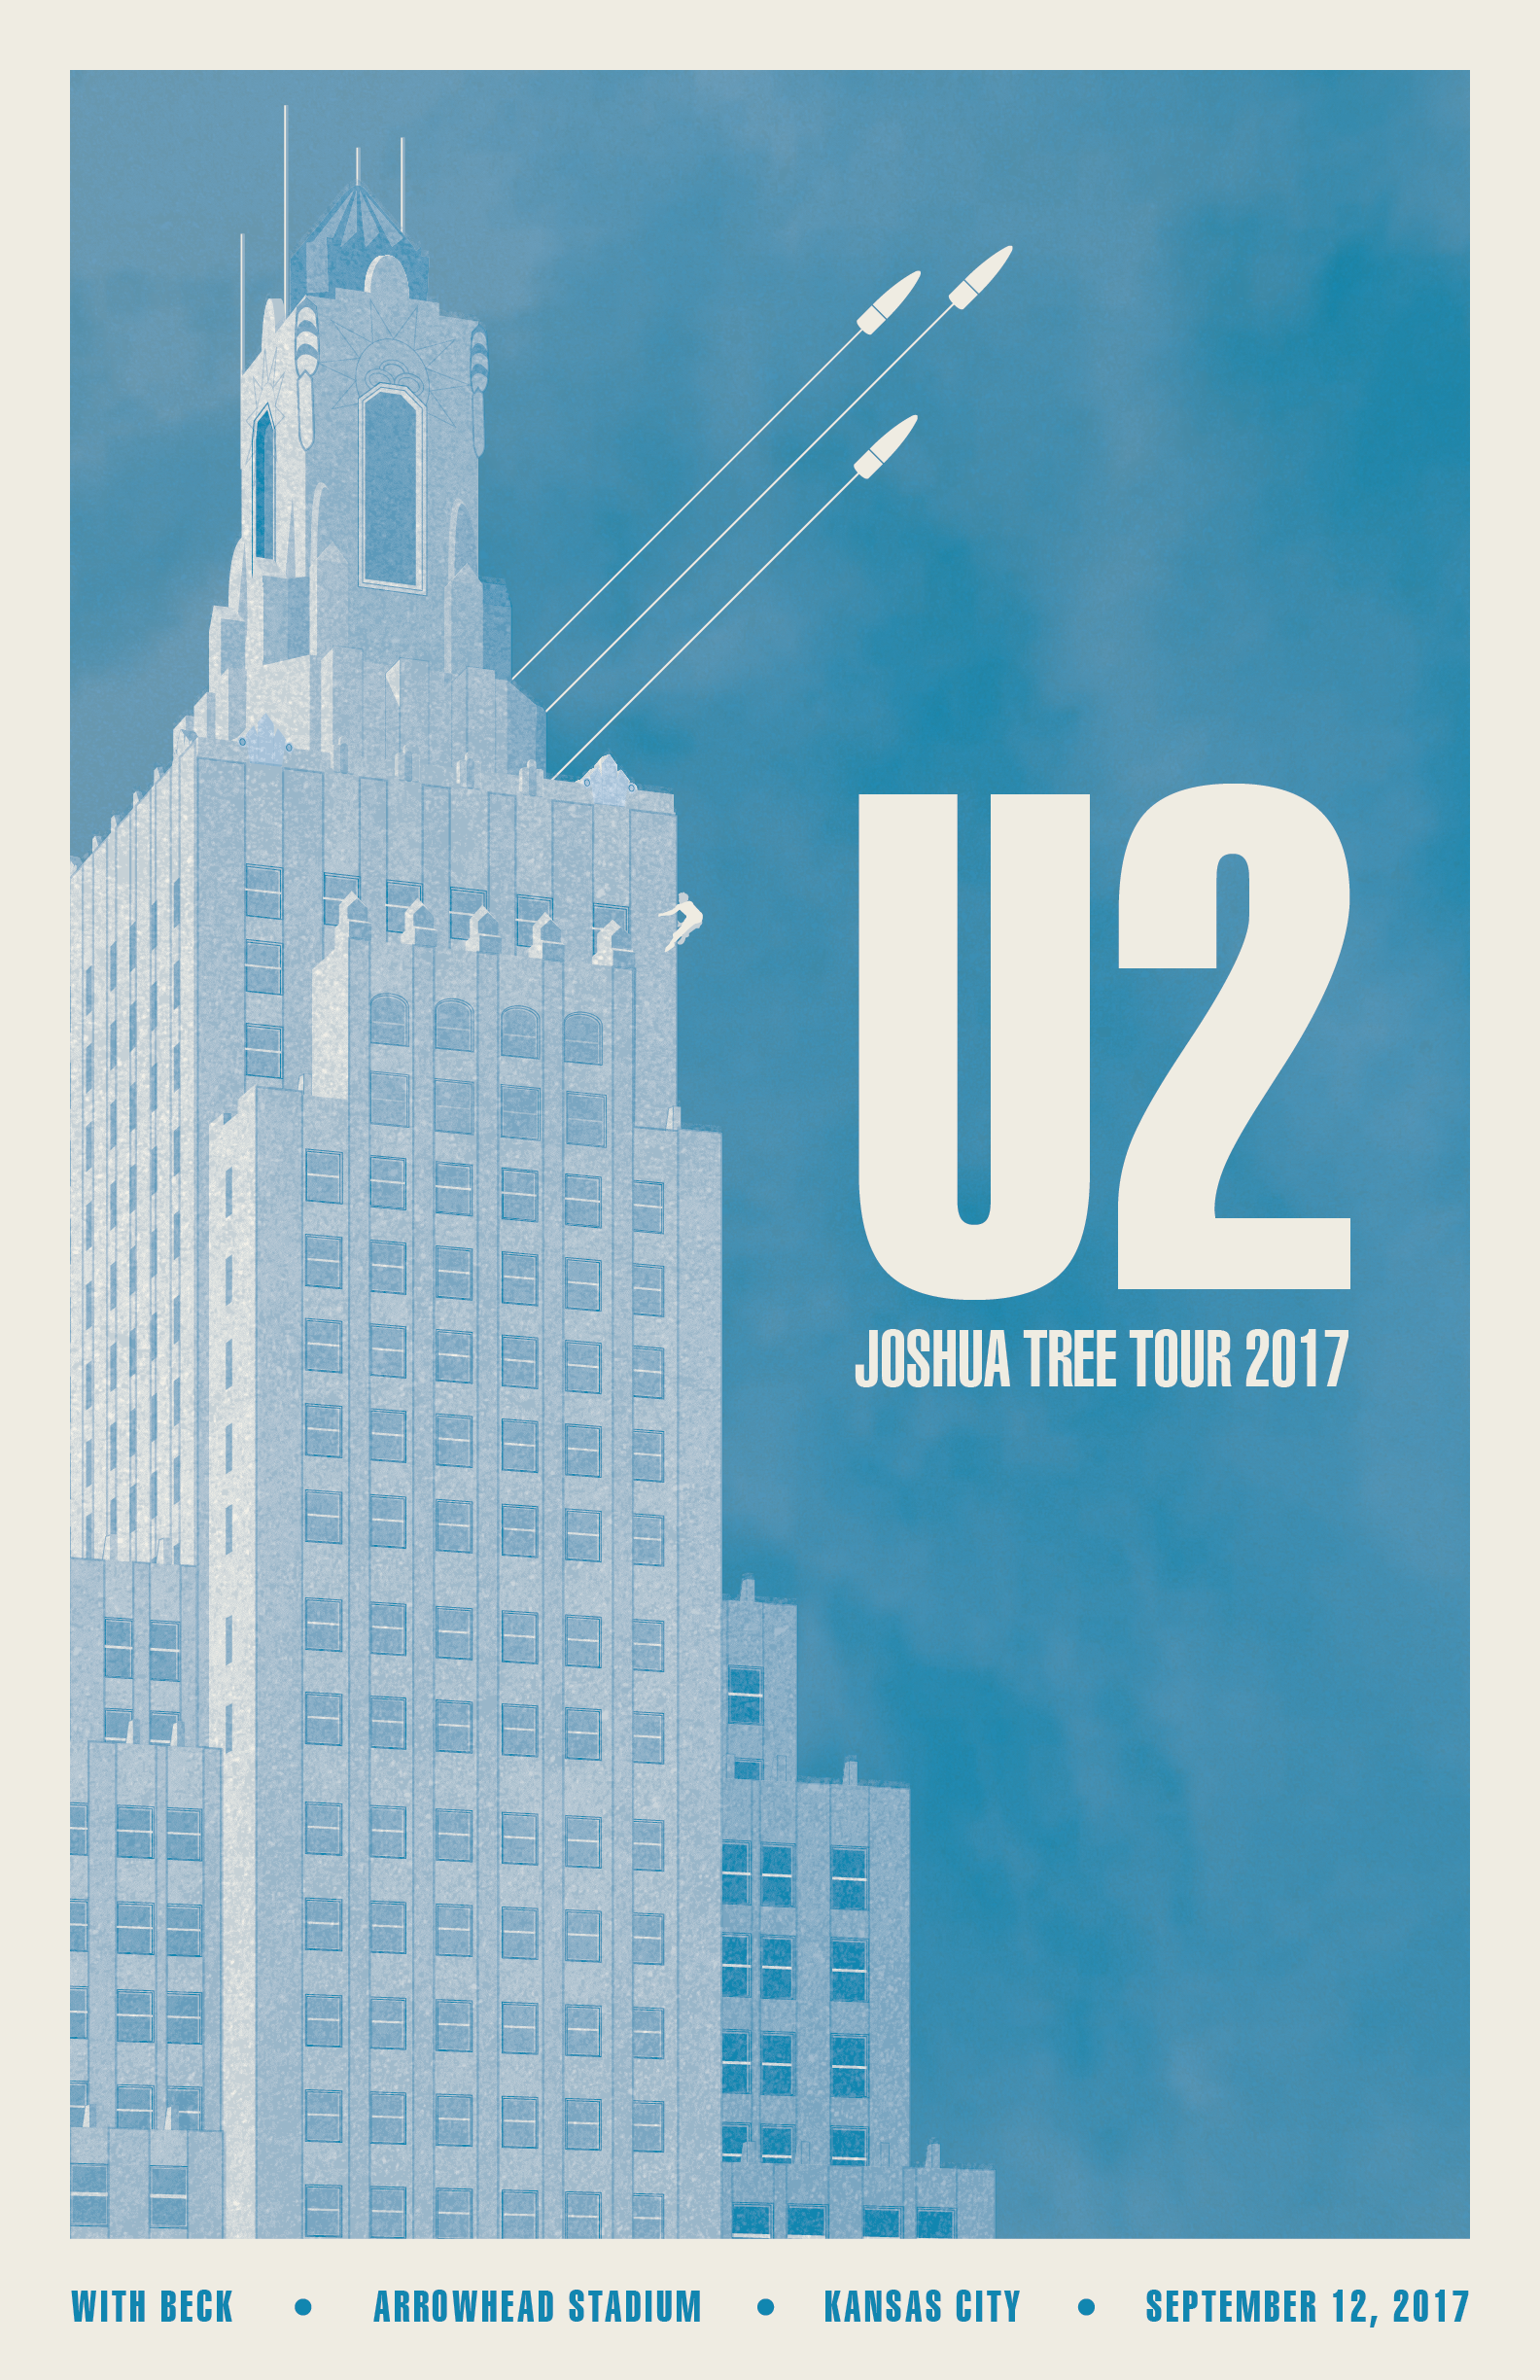 u2-joshua-tree-kansas-city-arrowhead-stadium-gig-poster.png